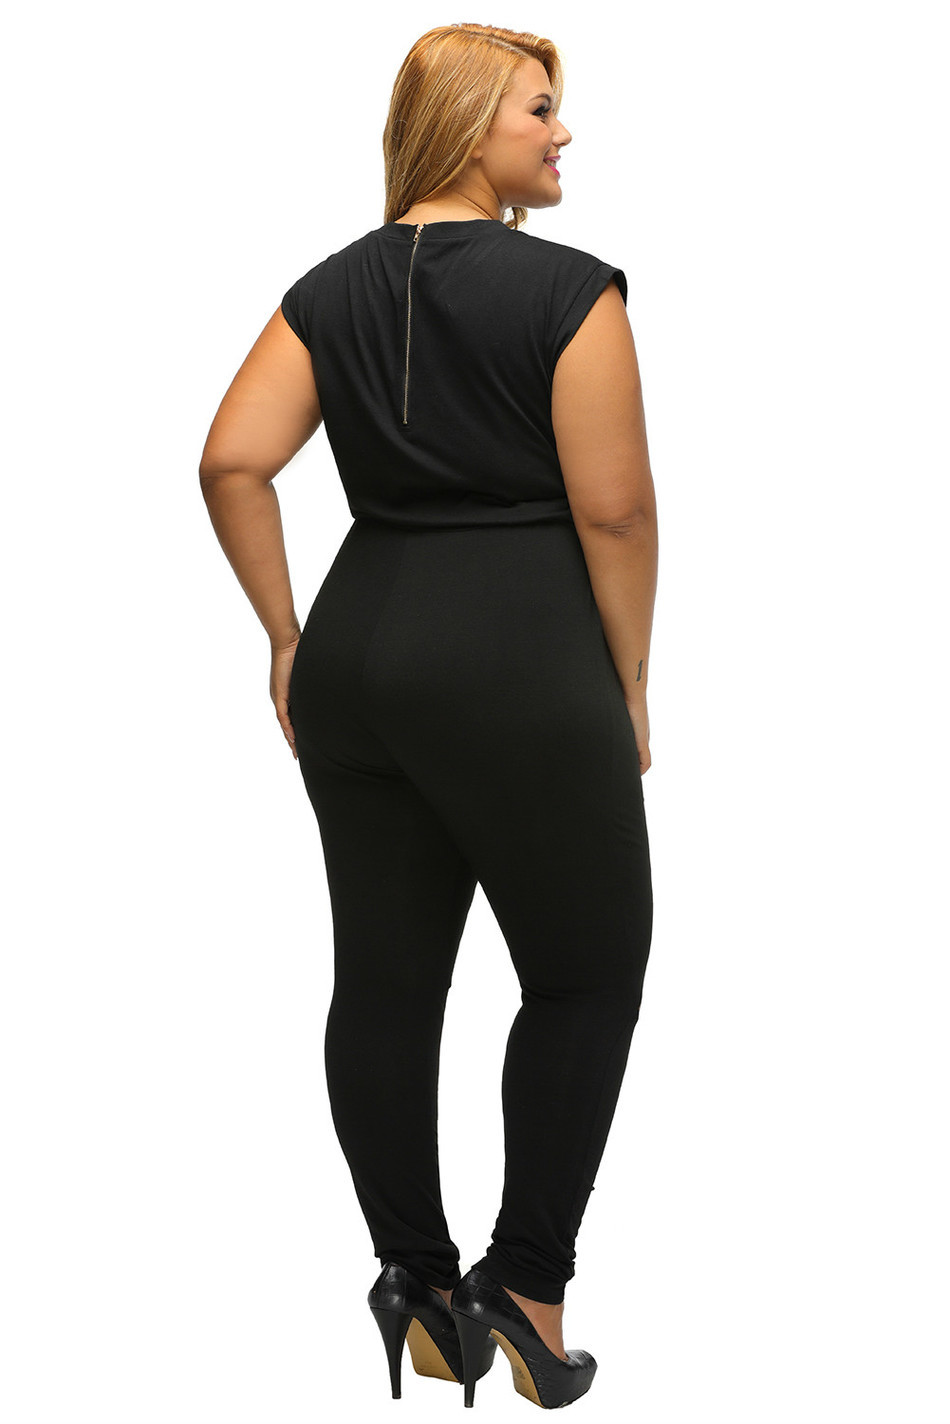 61add2cbd64a3 2017 Women macacao feminino comprido casual Zip Line Black Stretchy Plus  Size Jumpsuit Long Pants Romper Overalls DL64055 2P-in Jumpsuits from  Women's ...